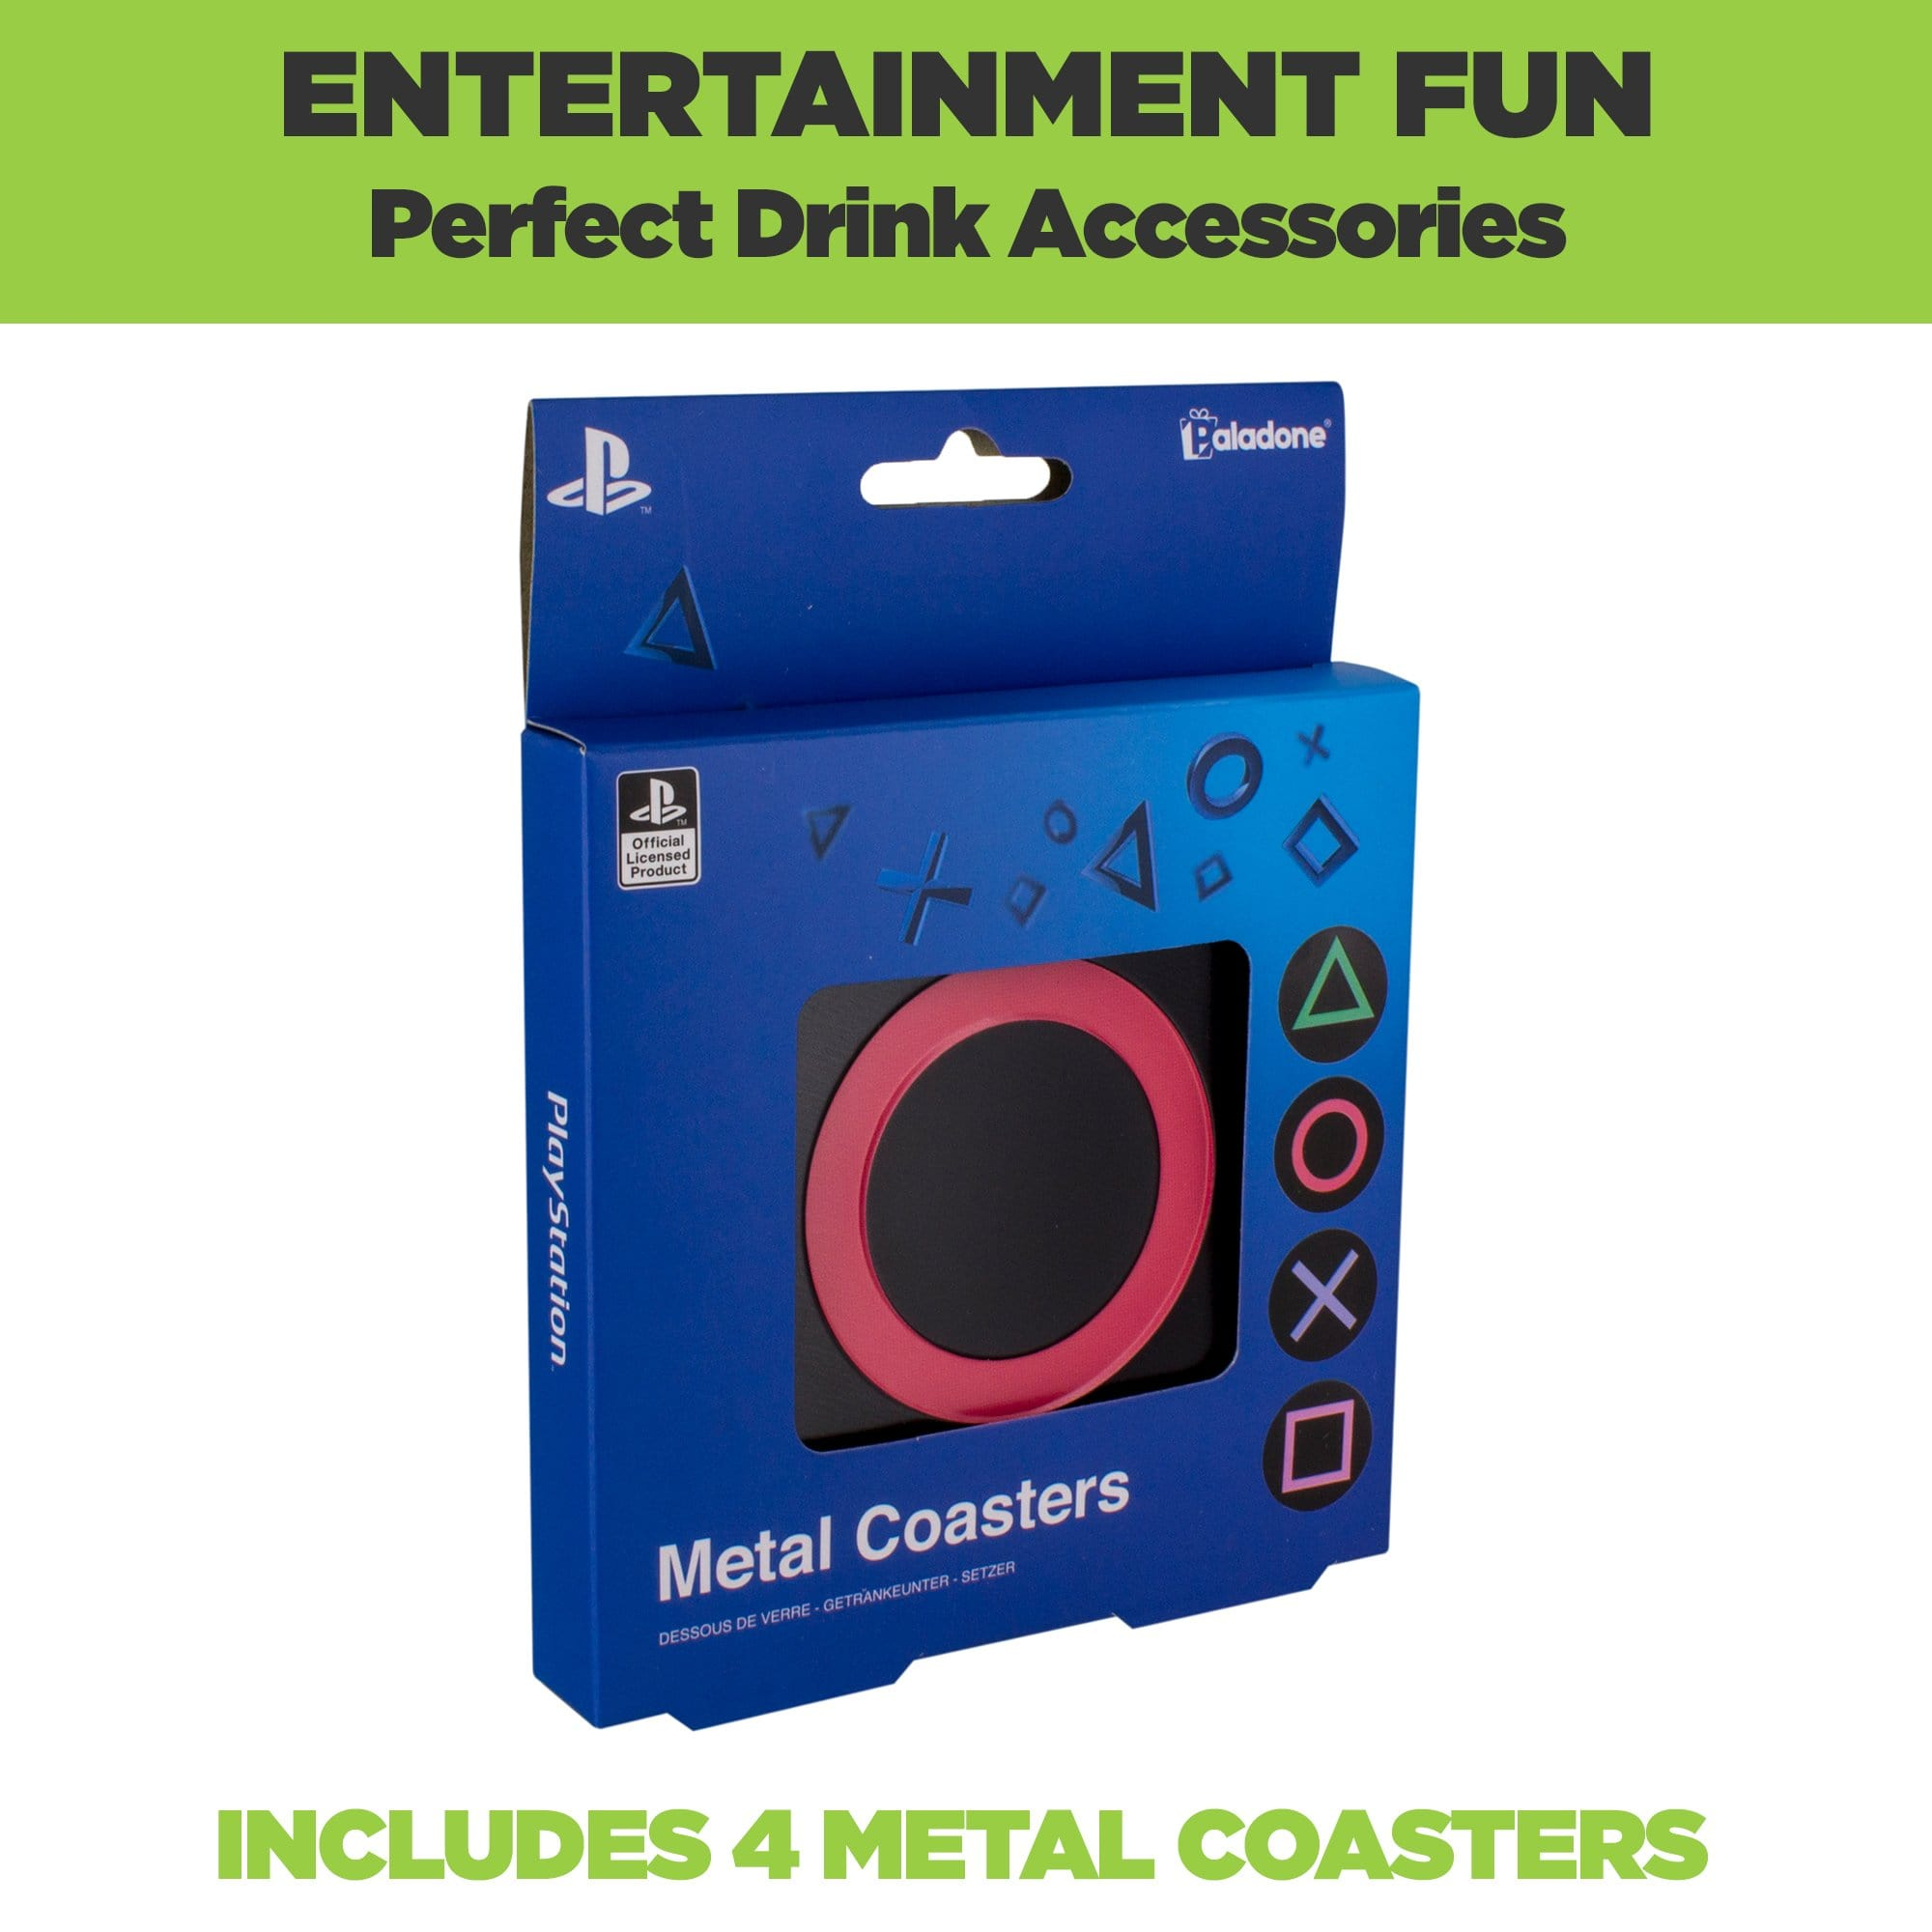 PlayStation Metal Coasters come in official PlayStation packaging. Includes 4 metal coasters.